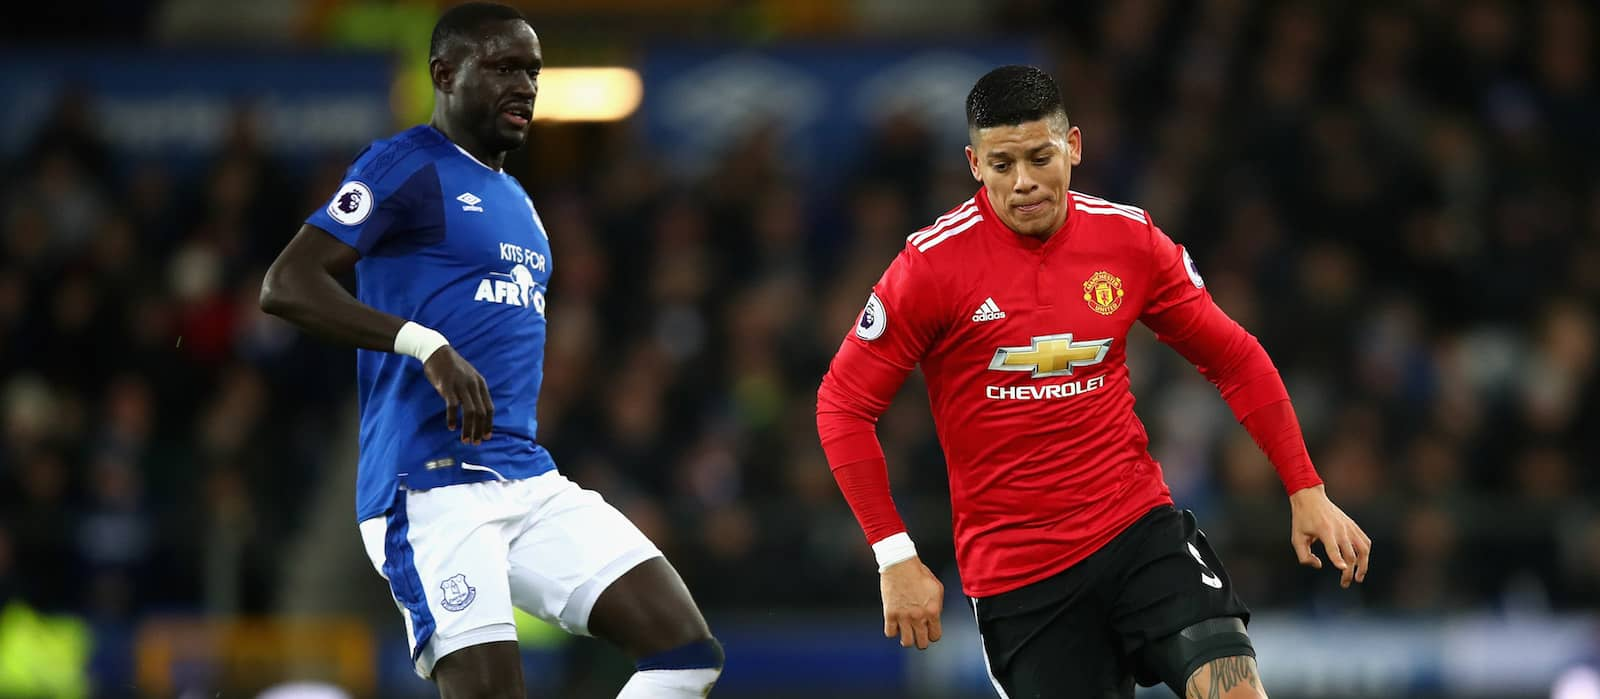 Luke Shaw injury places doubt in Marcos Rojo's potential departure